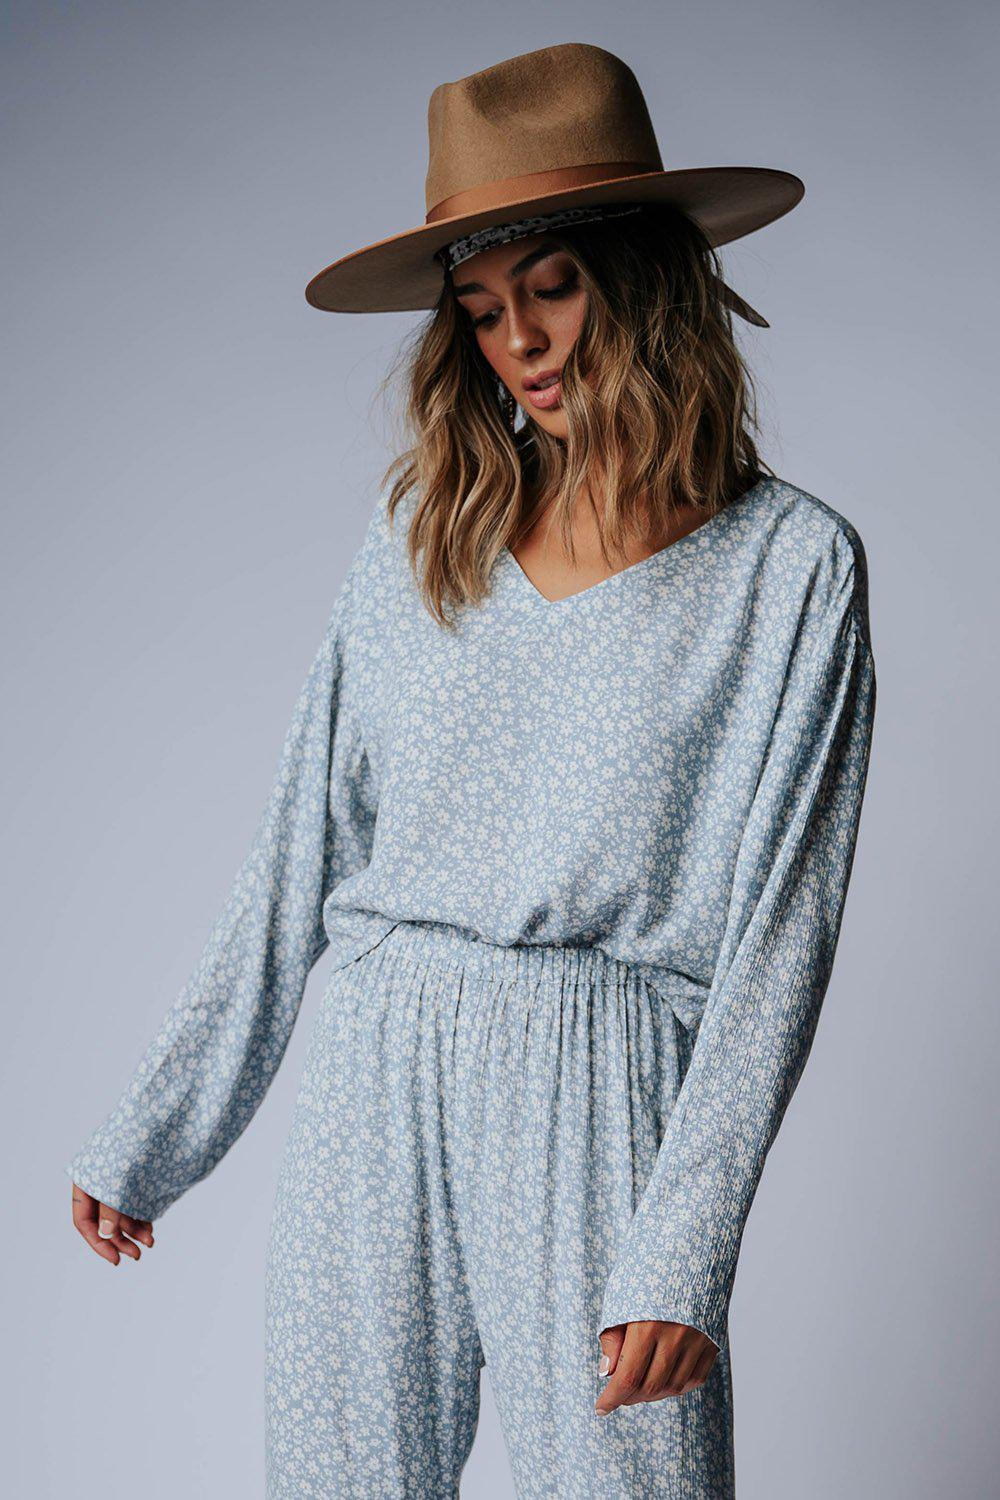 best_seller, Wren Top in Blue Floral, Bottom, women's clothing, dresses, skirts, coats, jackets, shoes, boots, tops, tee shirts, jeans, free people, levi's, rollas, jumpsuits, bottoms, tops, sweaters, pullovers, pants, shorts, sweats,.